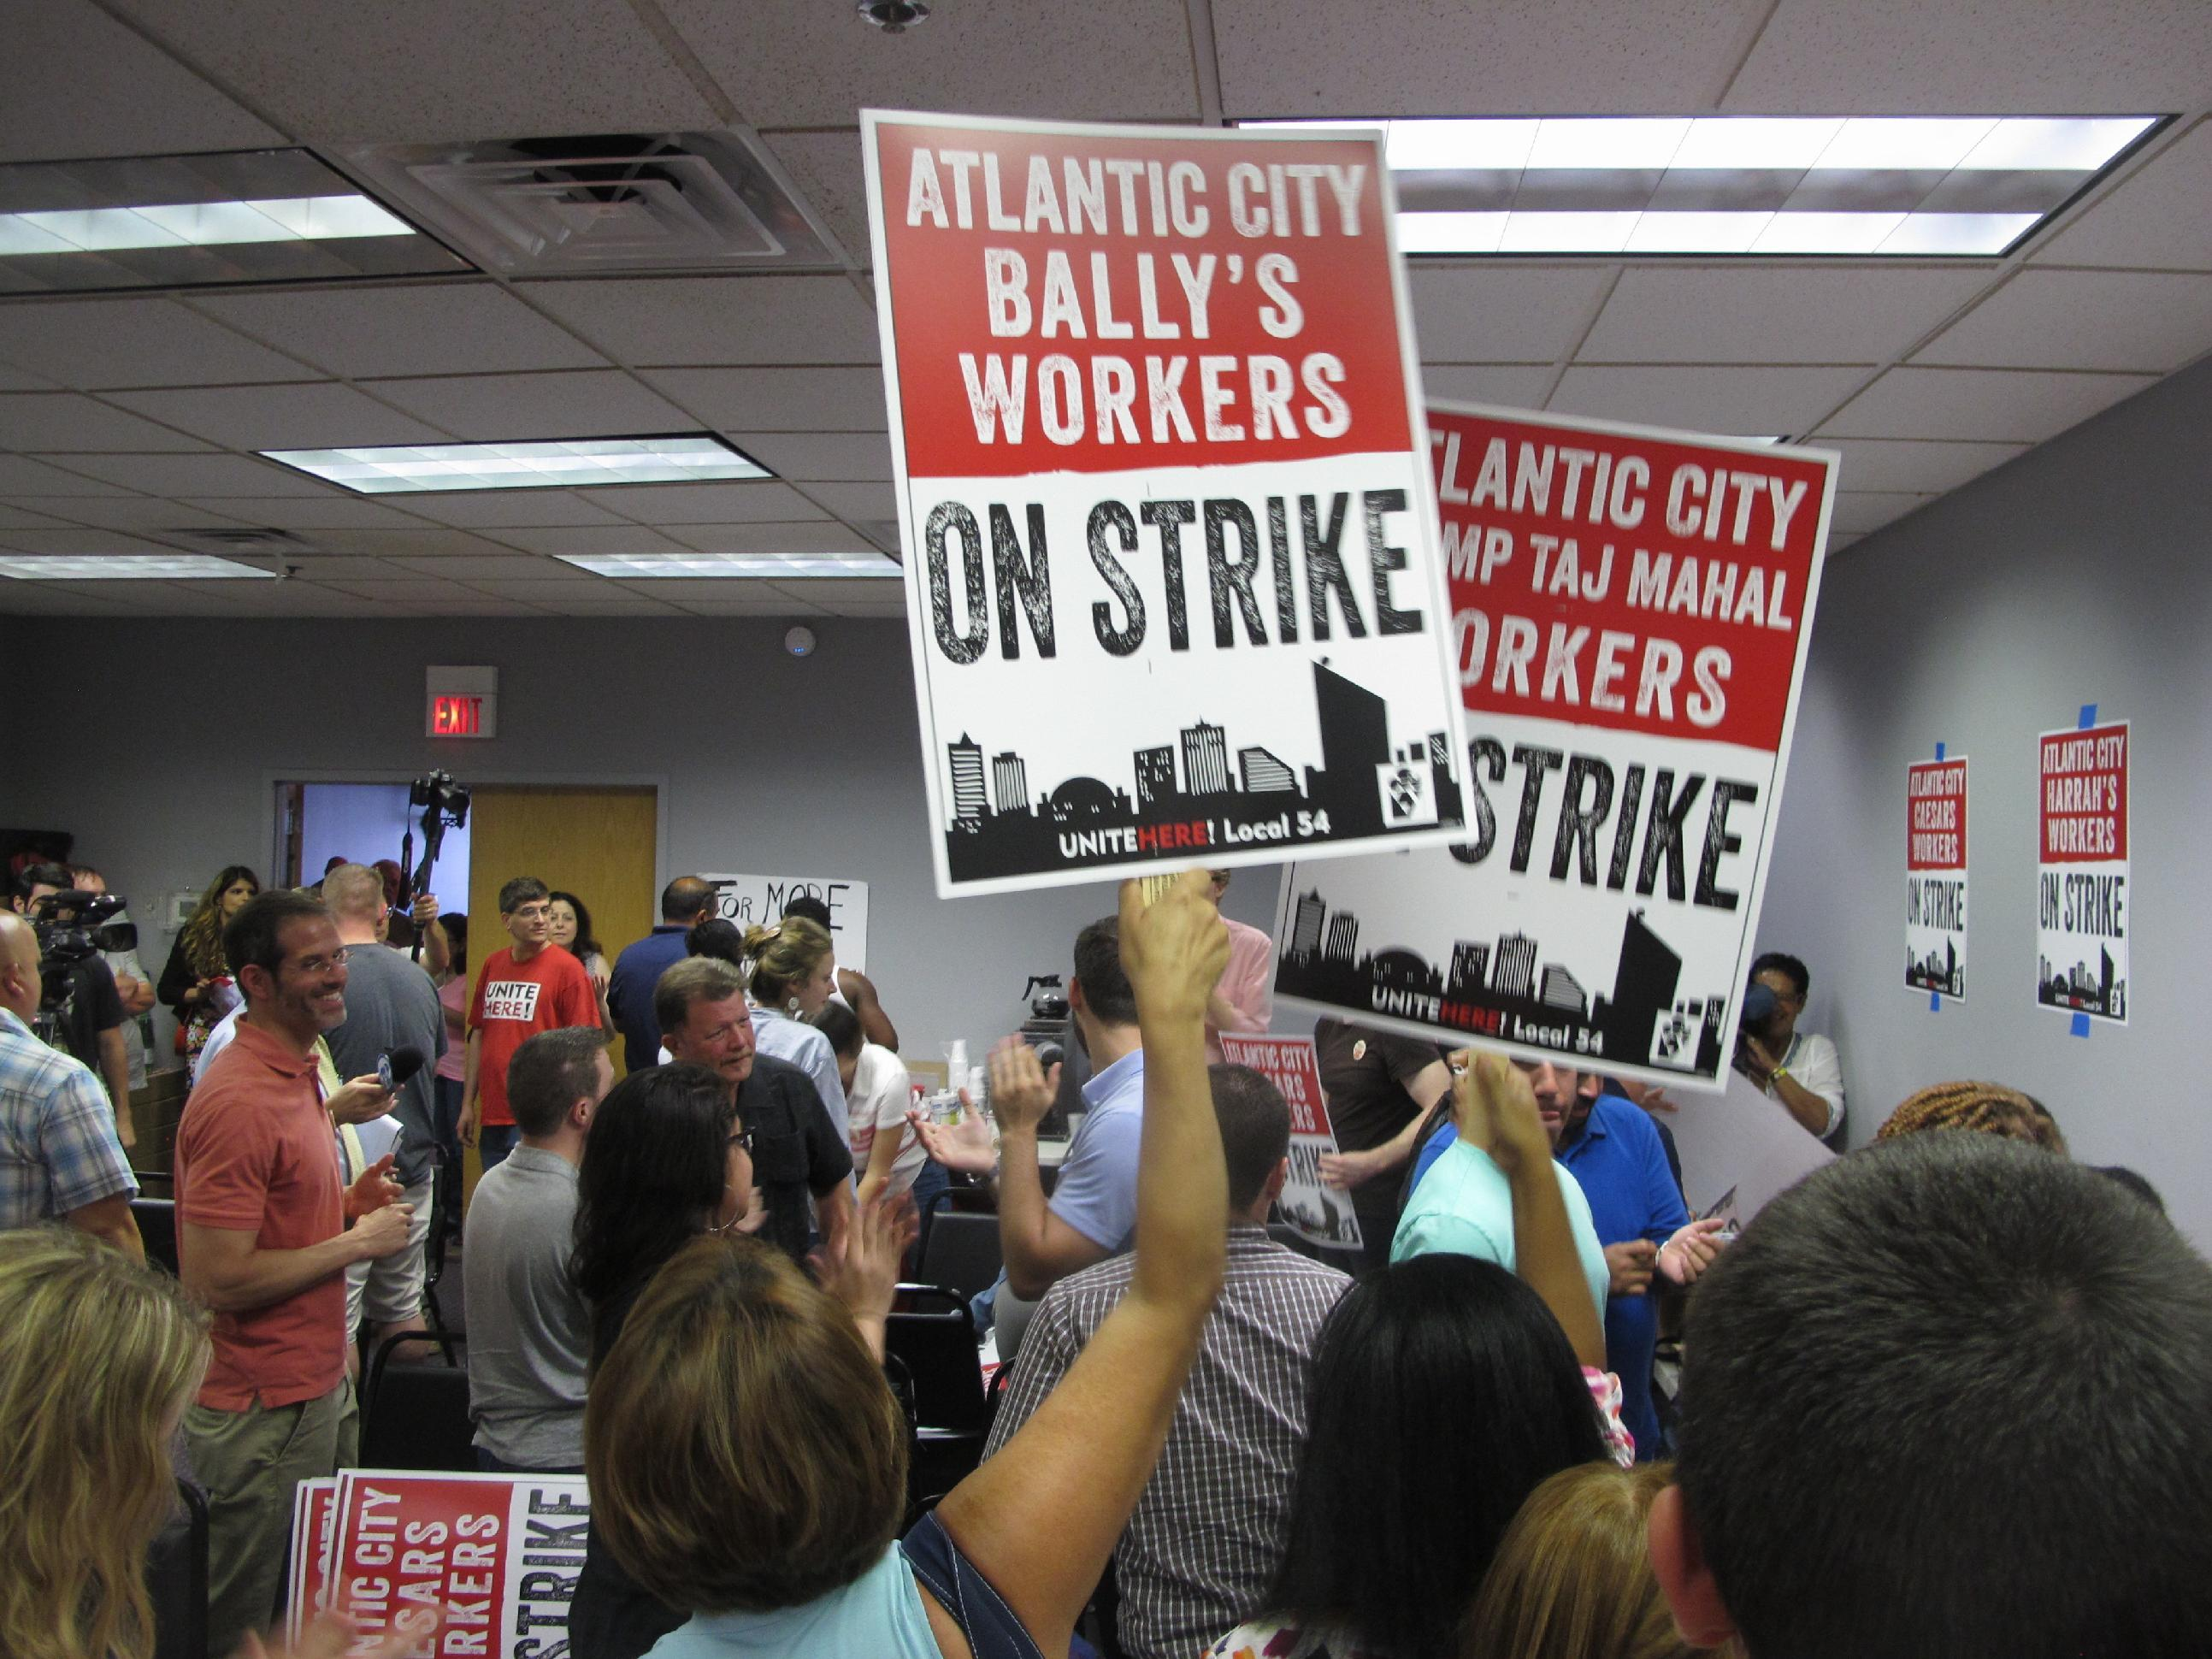 APNewsBreak: Union has deal with 4th Atlantic City casino